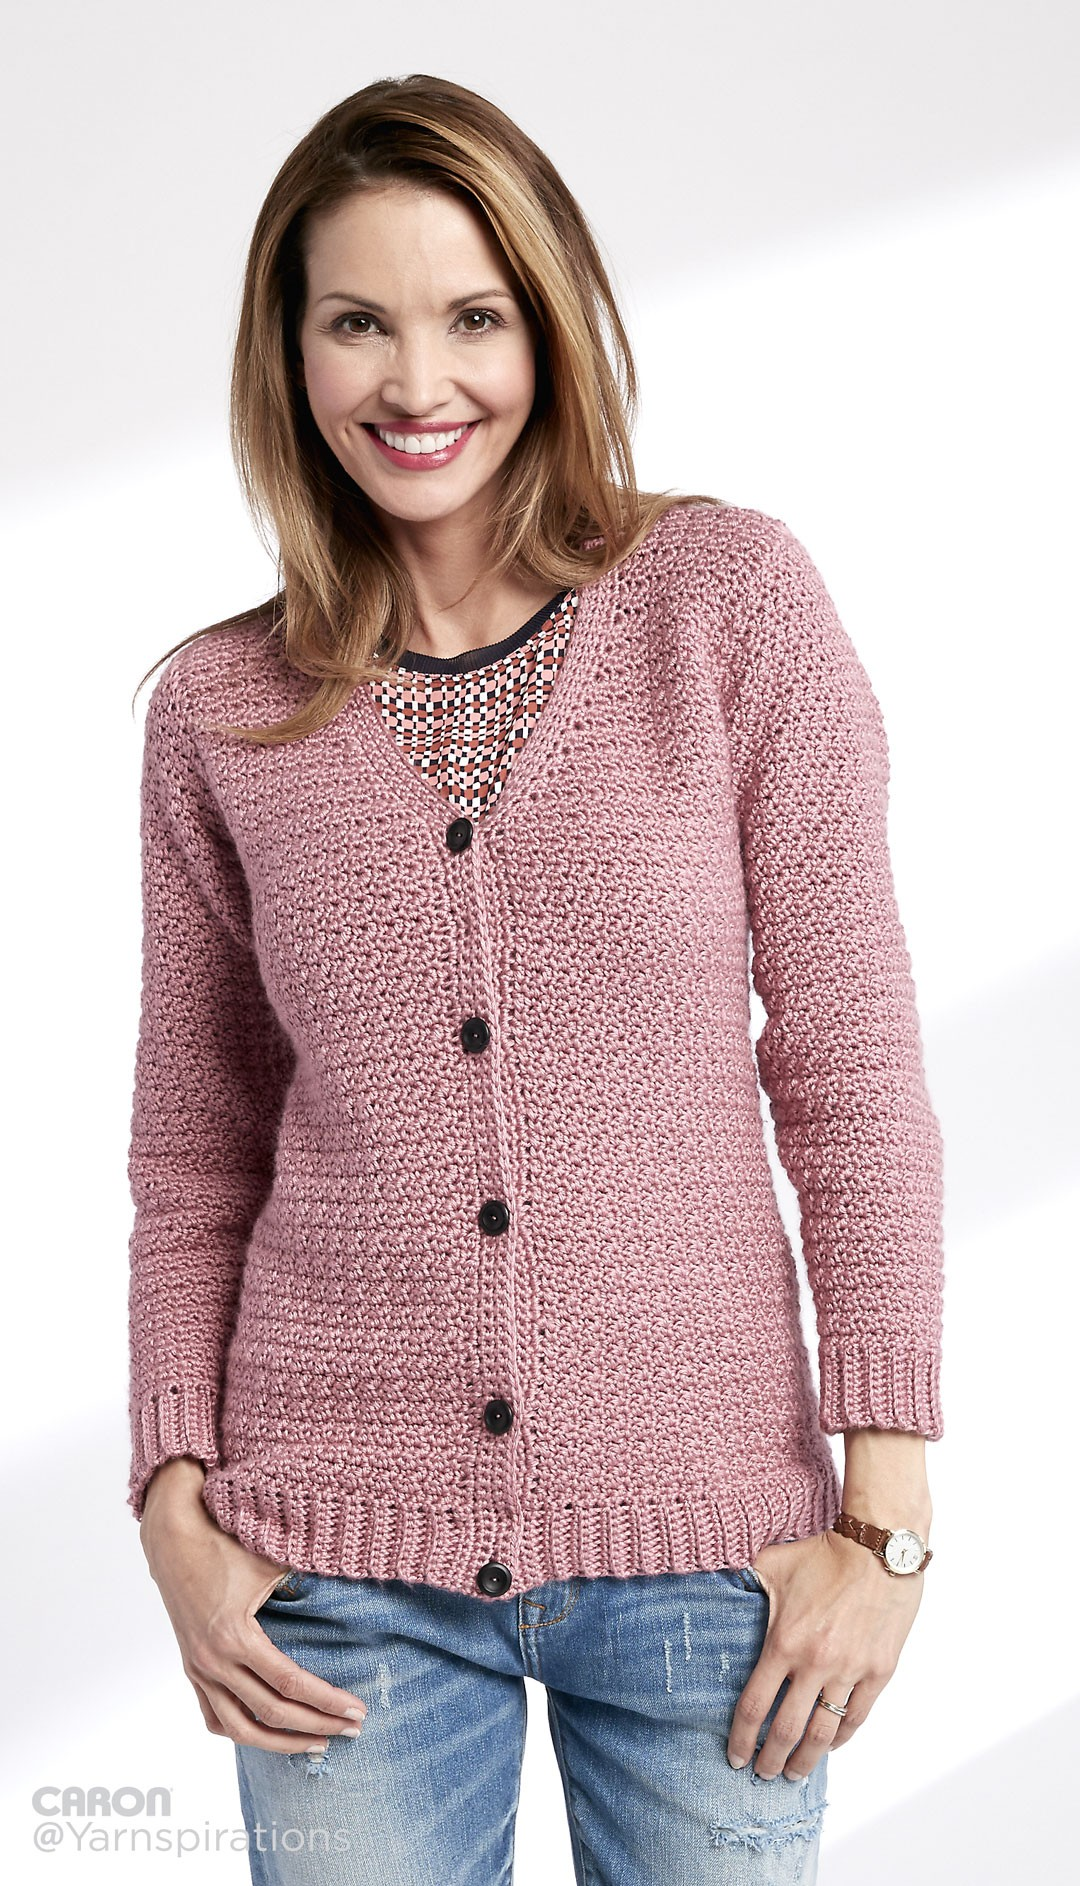 Womens Cardigan Crochet Patterns | Yarnspirations